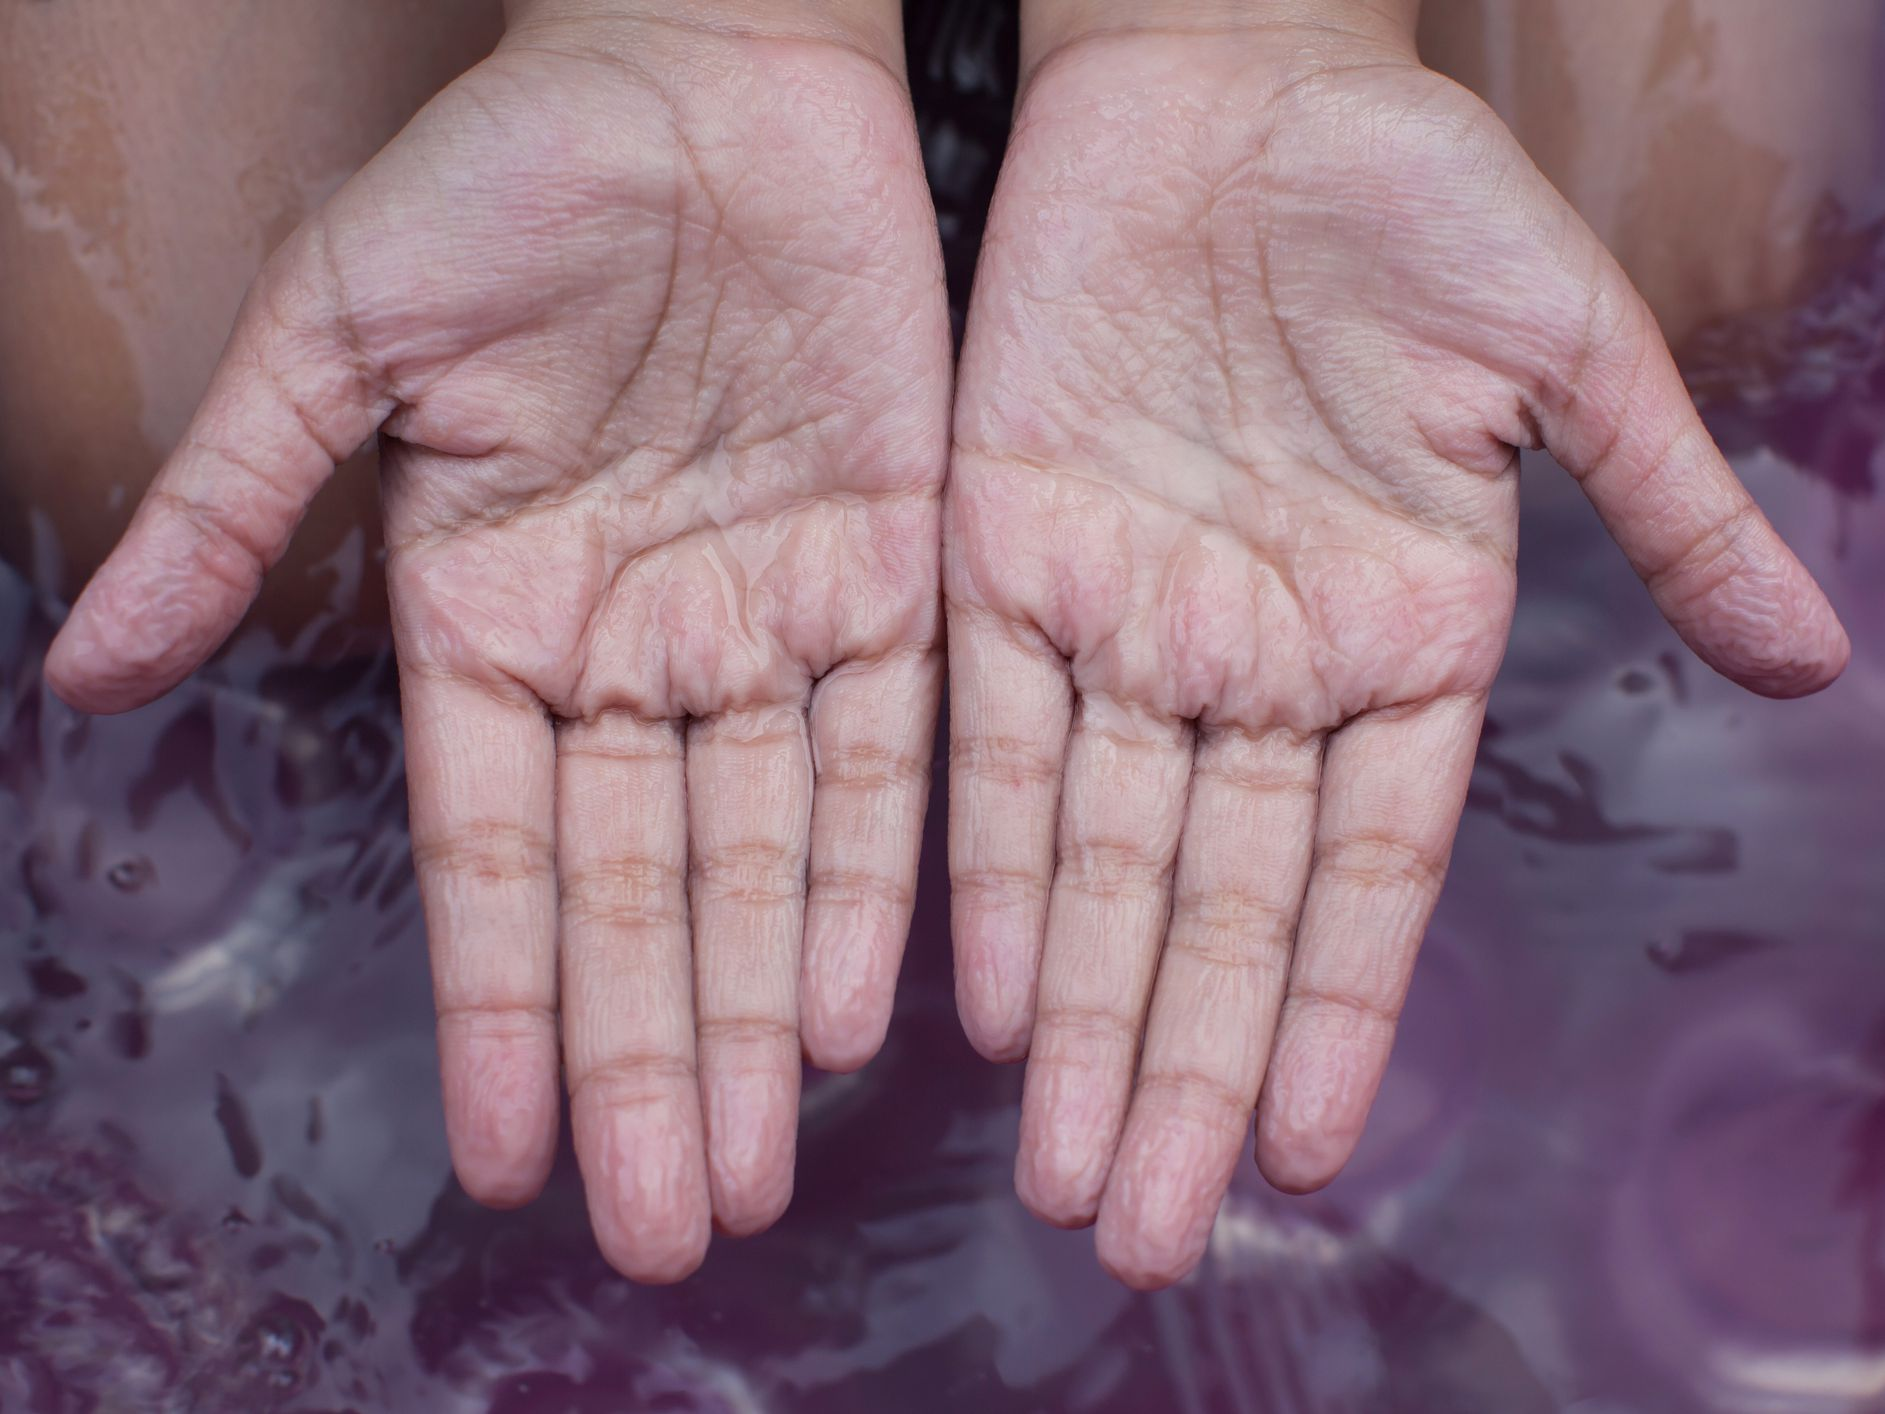 Why Do Fingers Wrinkle When In Water?